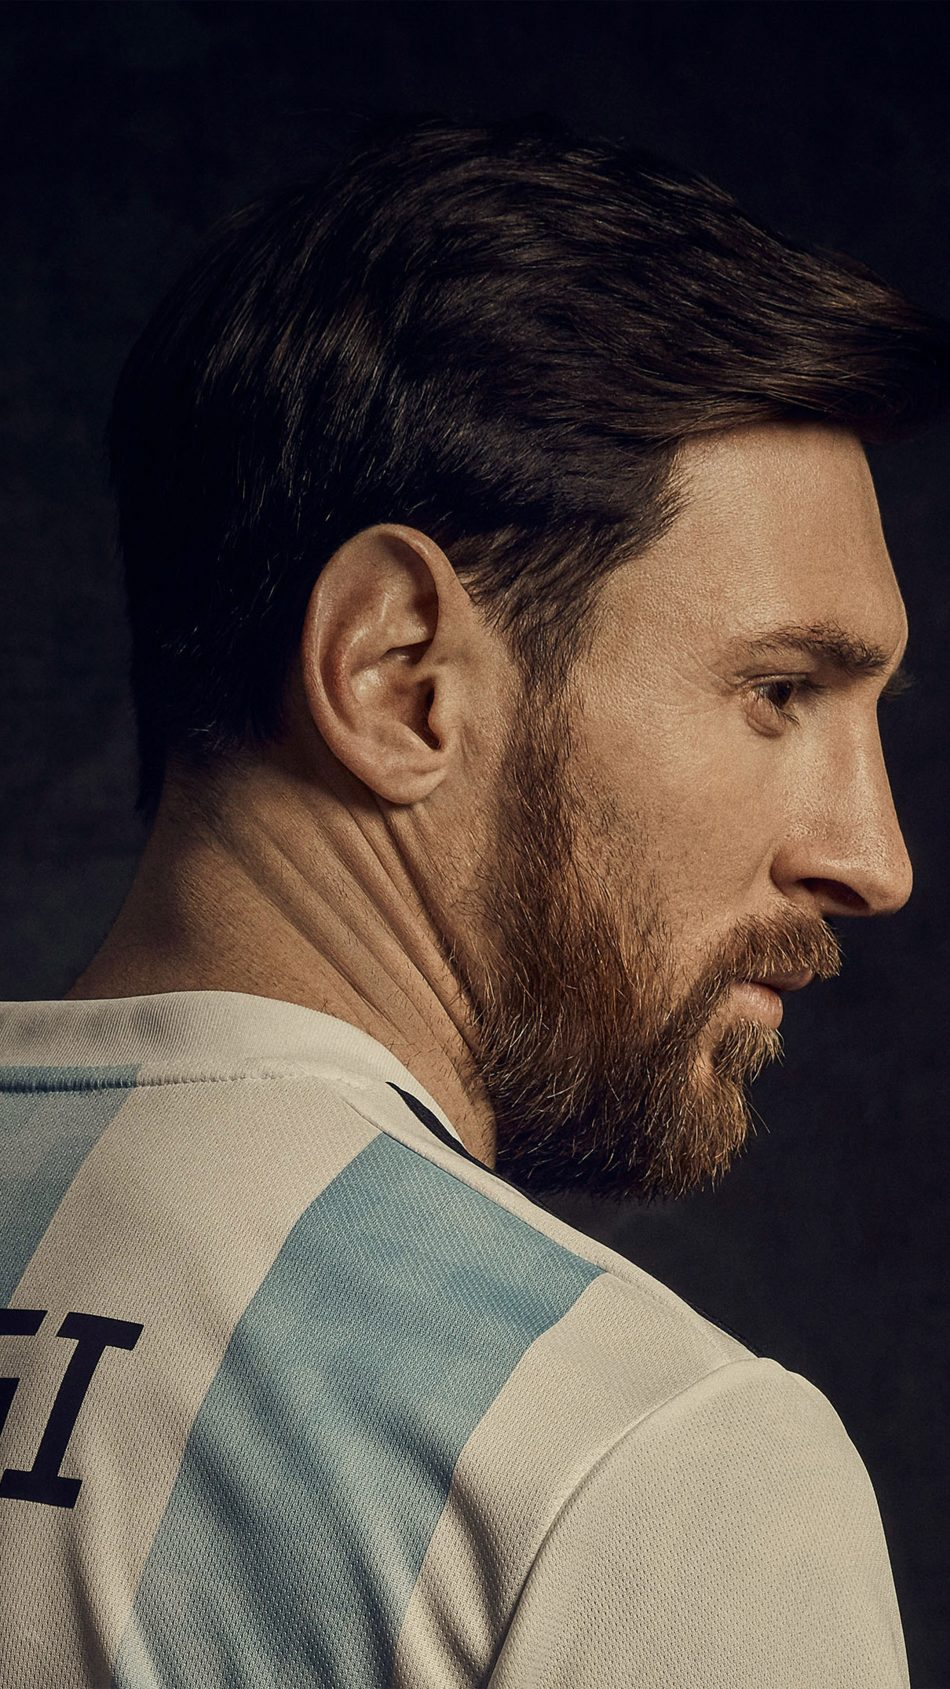 Download Lionel Messi 2019 Free Pure 4k Ultra Hd Mobile Wallpaper